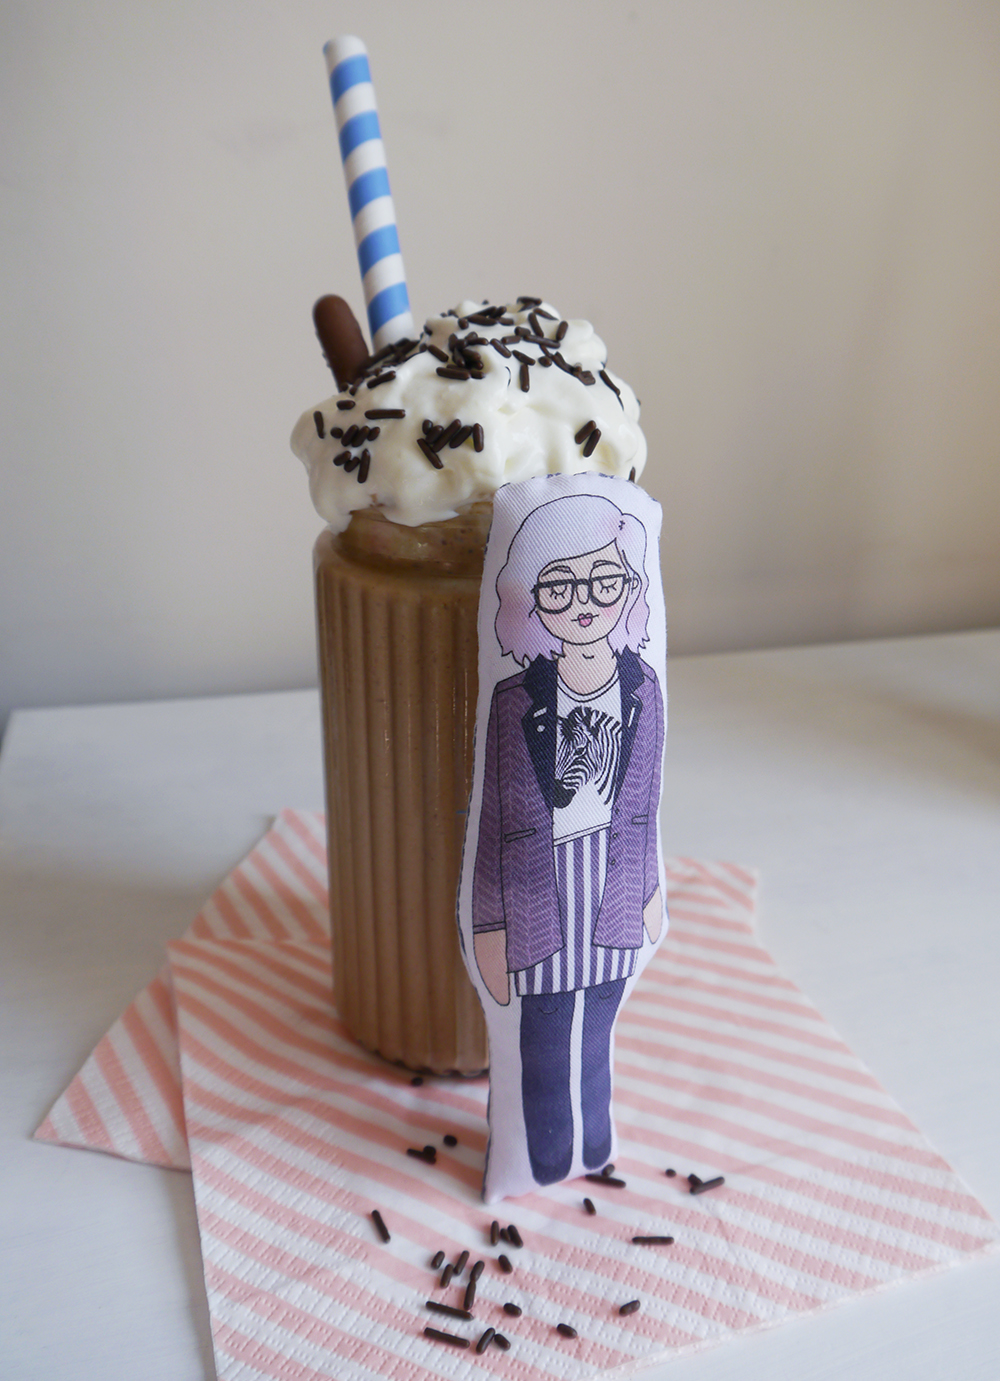 blog birthday, blogging duo, Edinburgh bloggers, Scottish bloggers, blogger style, milks shakes, milkshake recipes, food styling, Ellie Kate Grey, customised dolls, personalised illustrations, Nutella peanut butter banana milkshake, toffee popcorn milkshake, movie milkshake, Roller Shakes, food styling, colourful straws, hard shake recipes